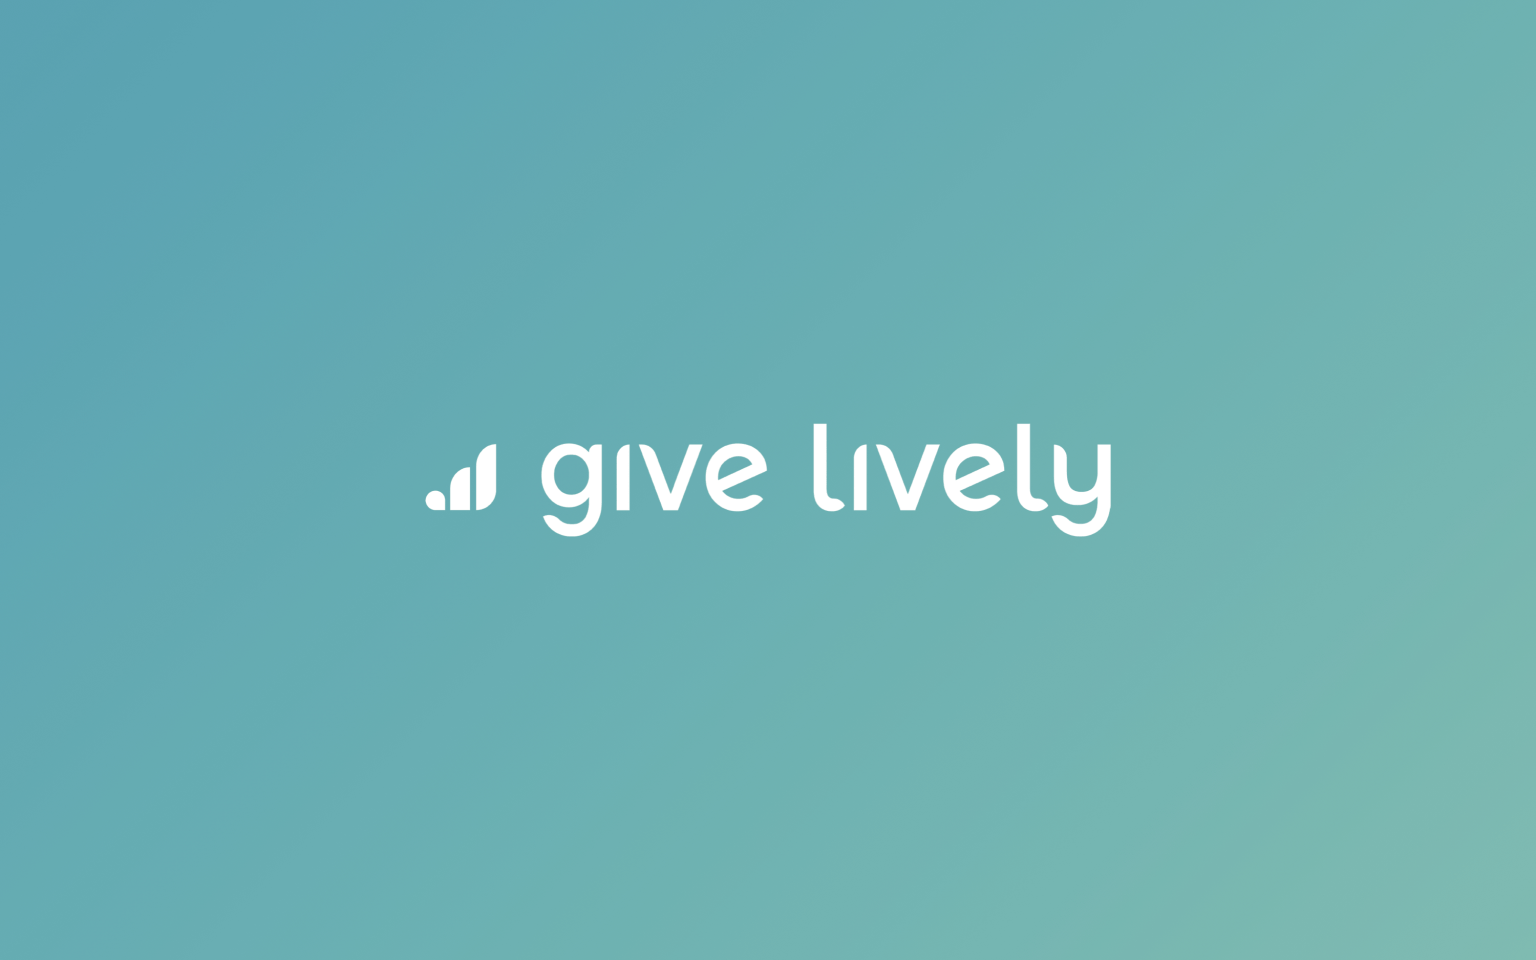 Give Lively Style Guide